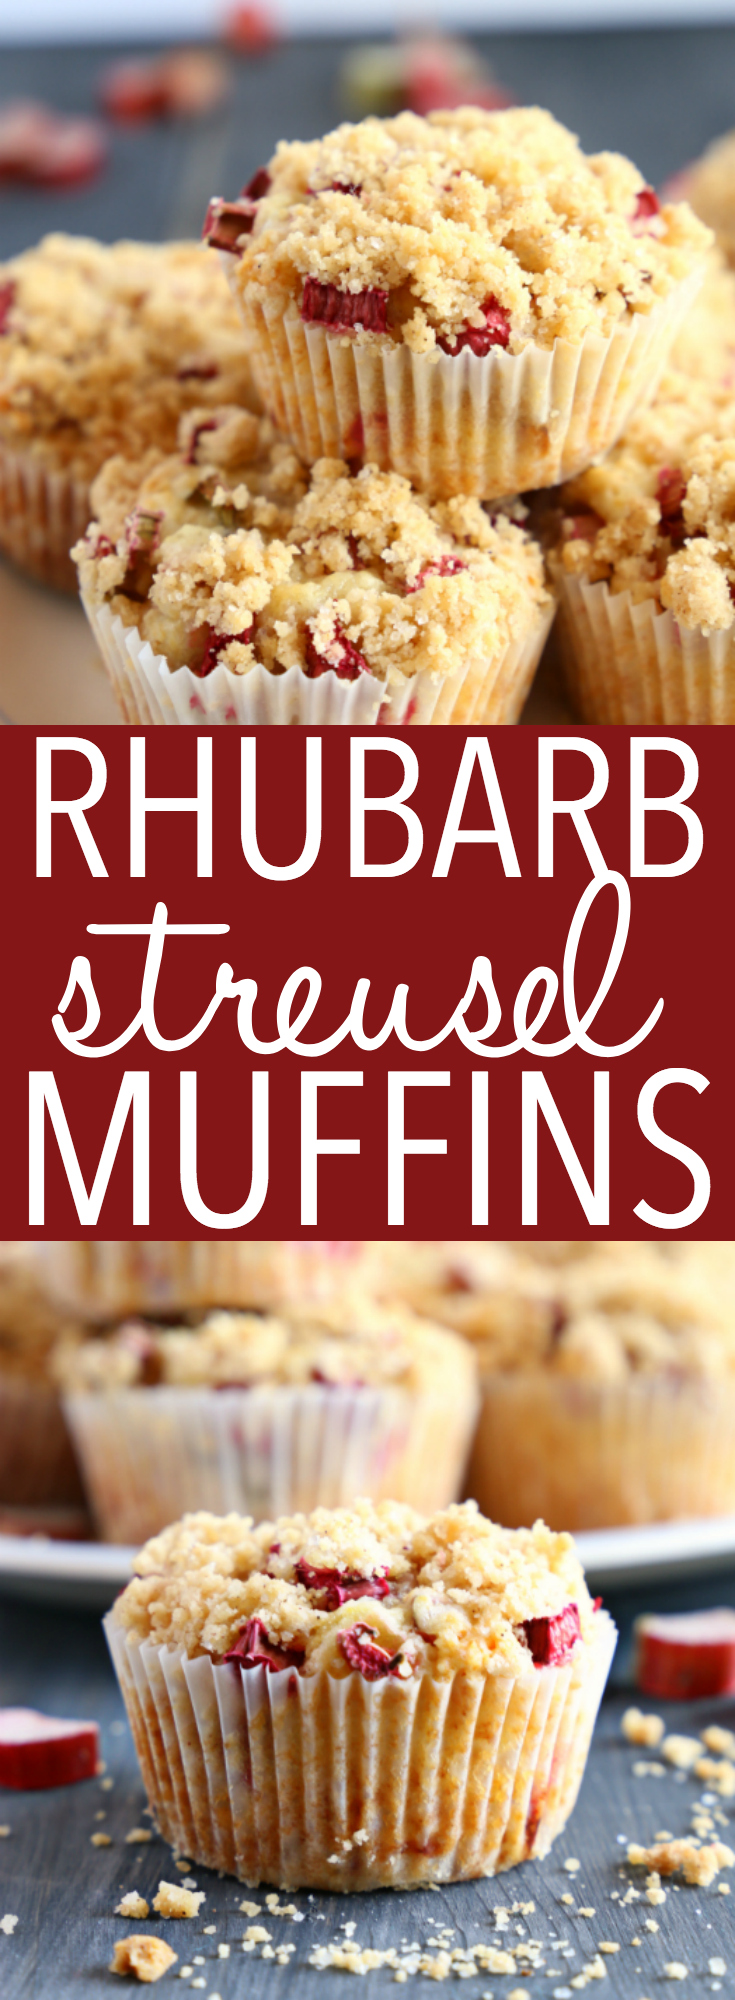 These Best Ever Rhubarb Streusel Muffins are the perfect sweet snack! This is such an easy recipe that's packed with fresh rhubarb and a sweet, crunchy streusel topping!  Recipe from thebusybaker.ca! #rhubarb #recipe #summer #dessert #crumble #cobbler #streusel #streudel #muffins #easy #fun #spring #homemade #video #fruit #homesteading #gardening via @busybakerblog